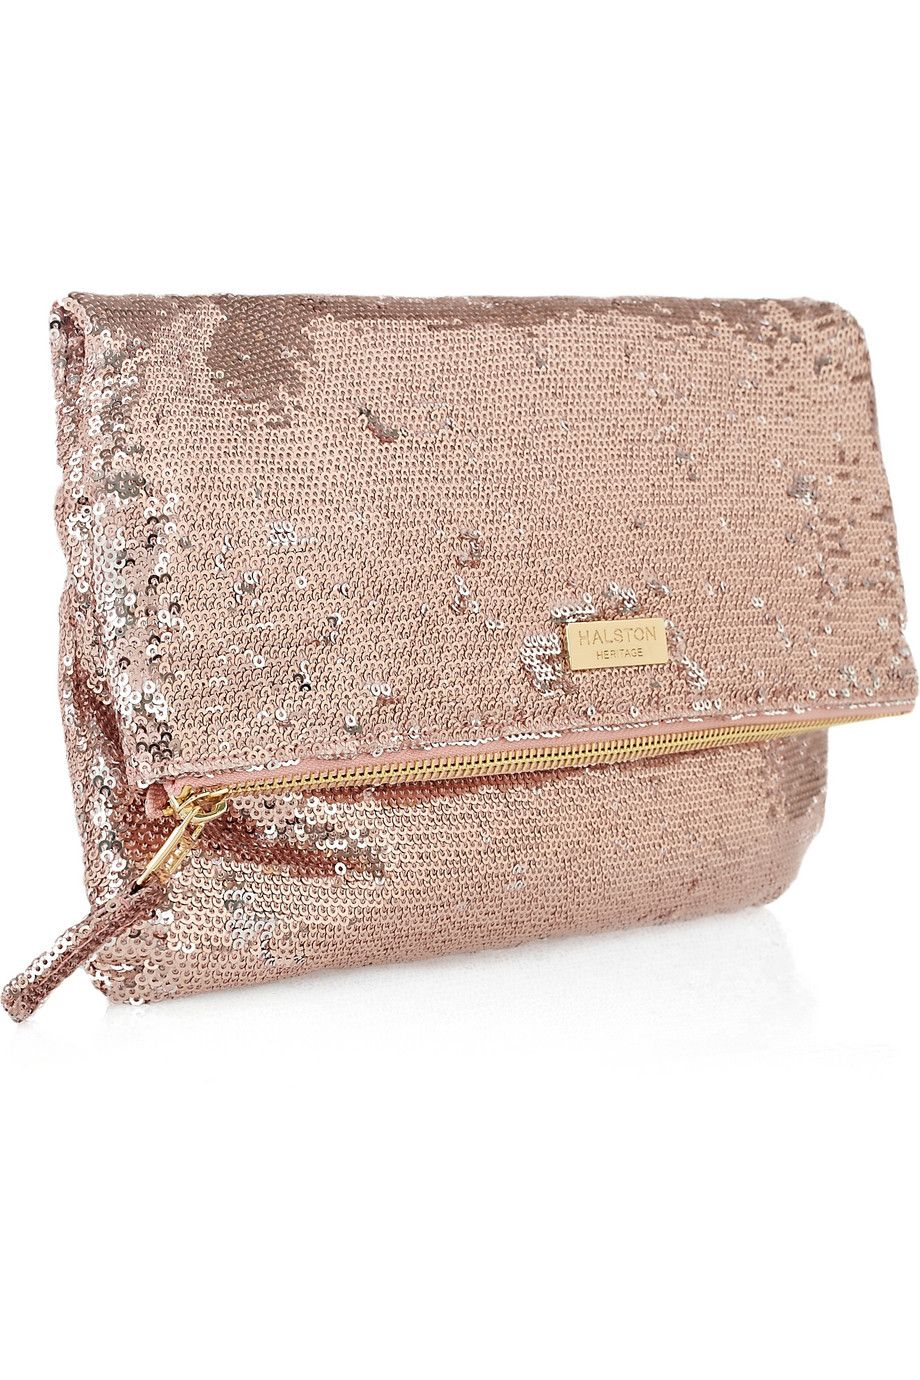 This rose gold sequin clutch would be perfect with a pair